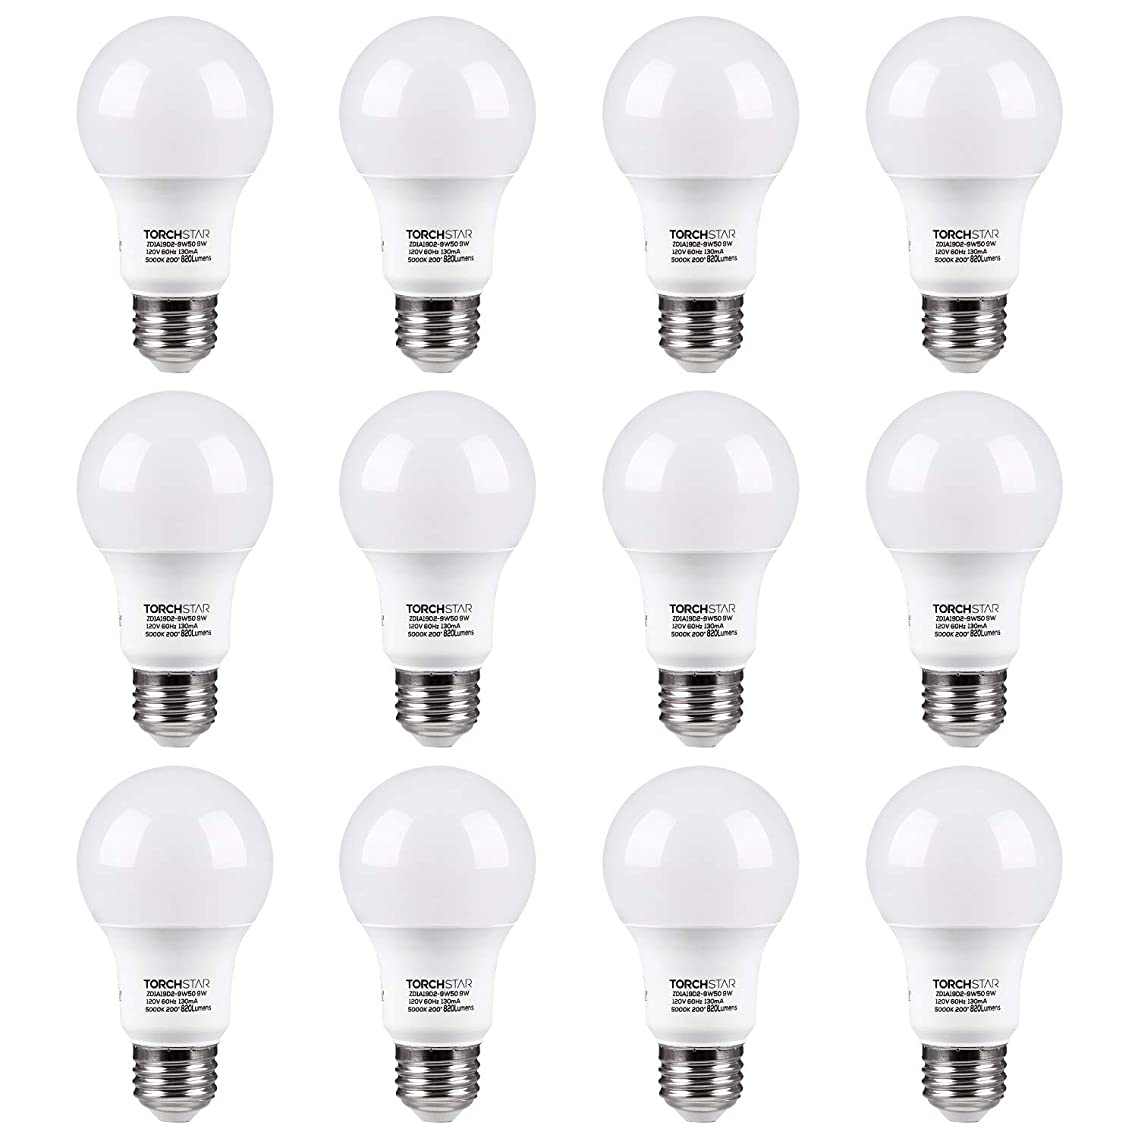 TORCHSTAR UL-Listed A19 LED Light Bulb, 9W (60W Incandescent Equivalent), E26/E27 Base 820lm 5000K Daylight, Pack of 12